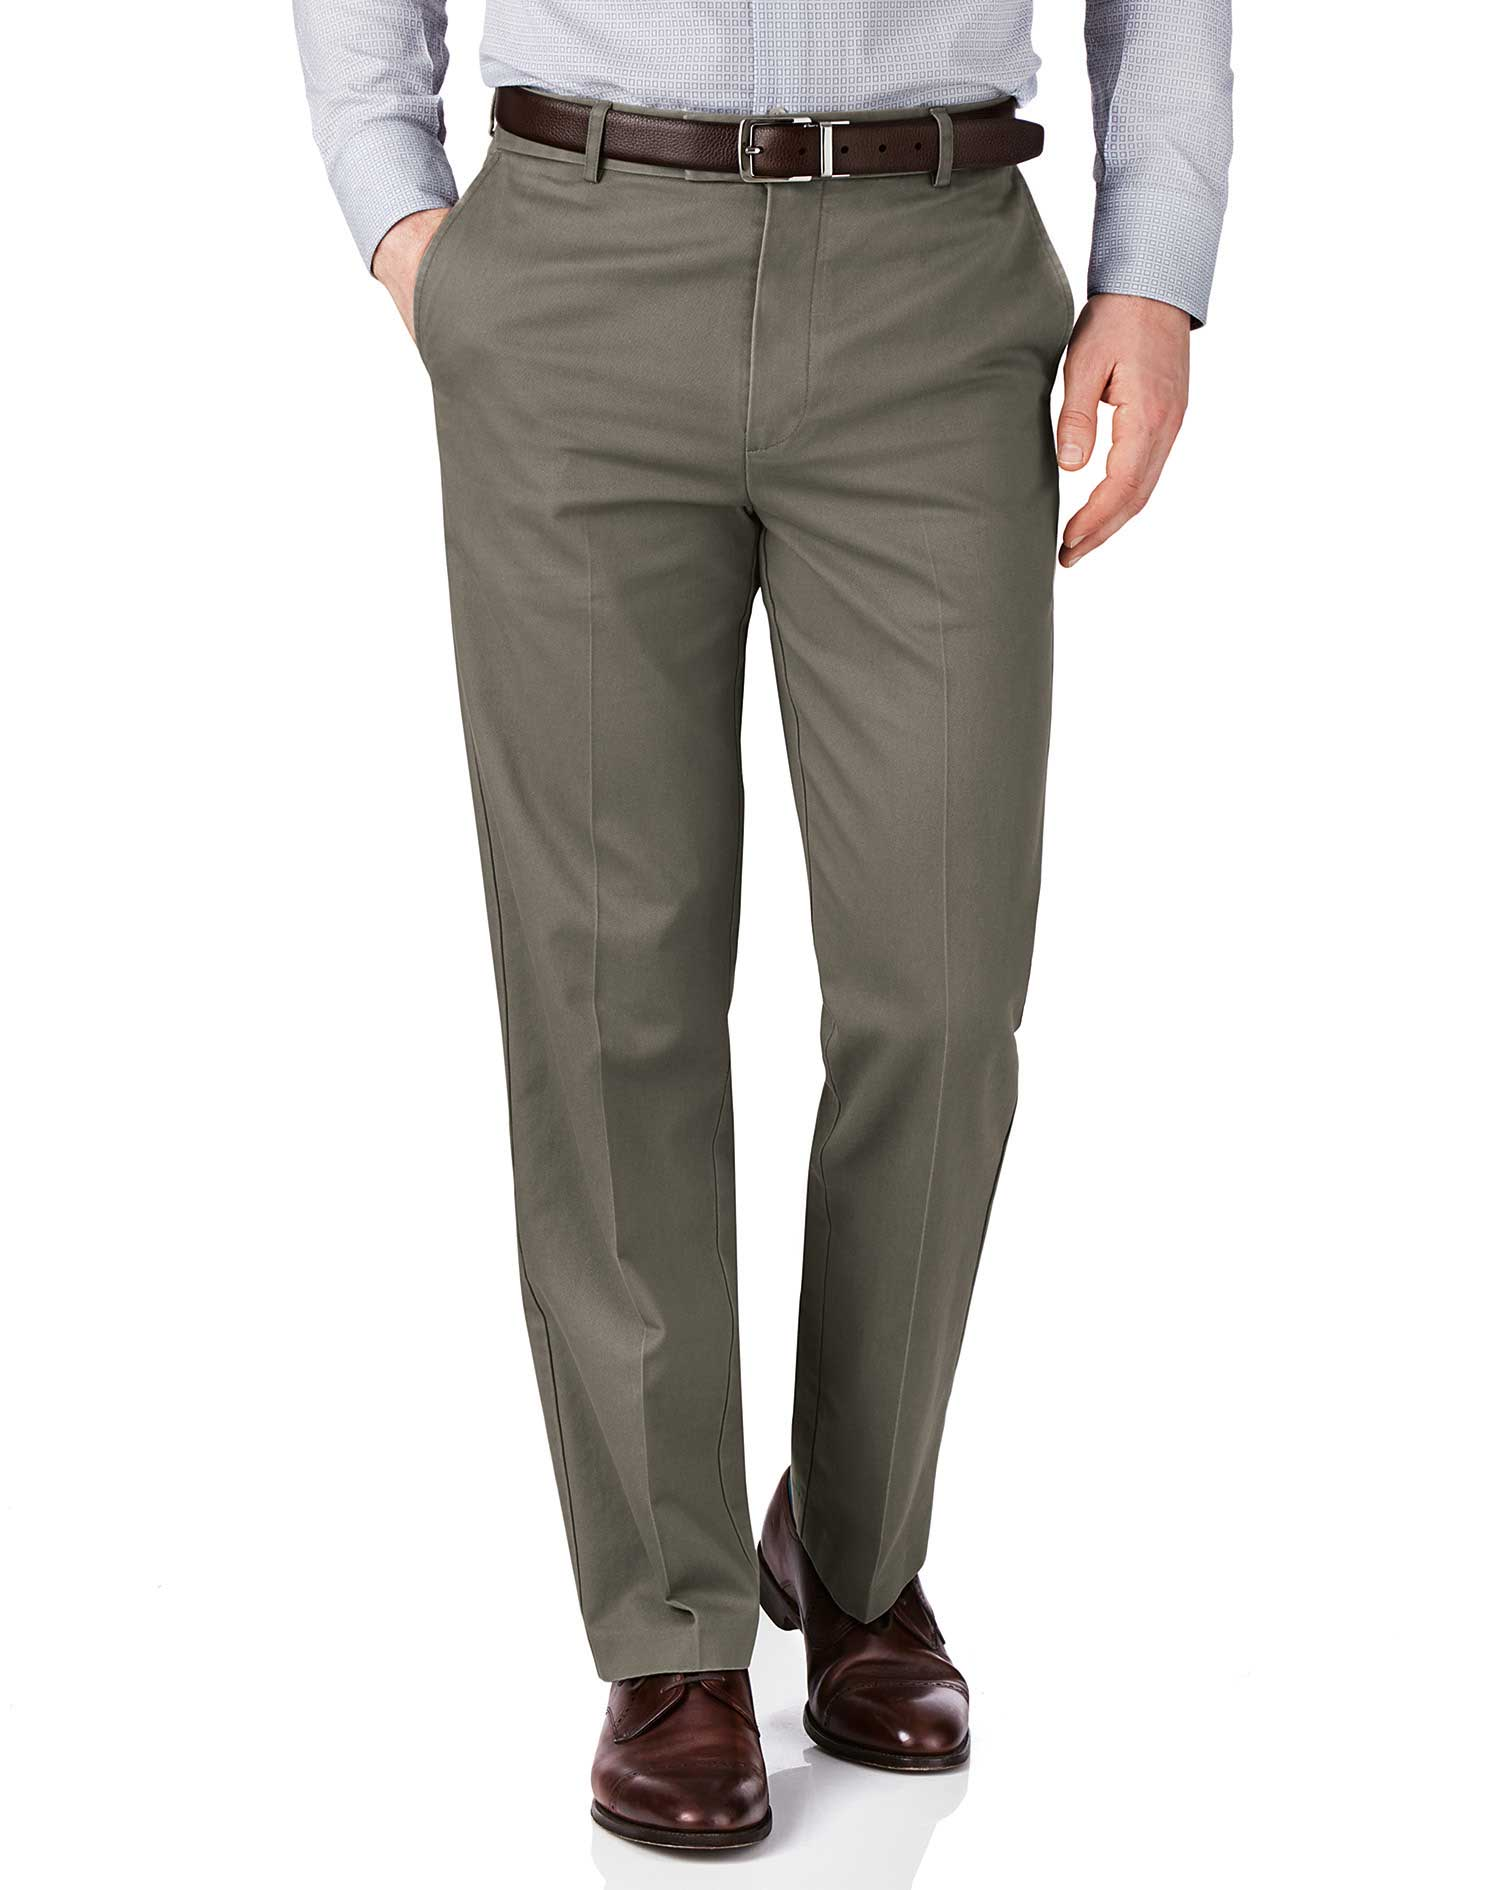 Olive Green Slim Fit Flat Front Non-Iron Cotton Chino Trousers Size W38 L34 by Charles Tyrwhitt